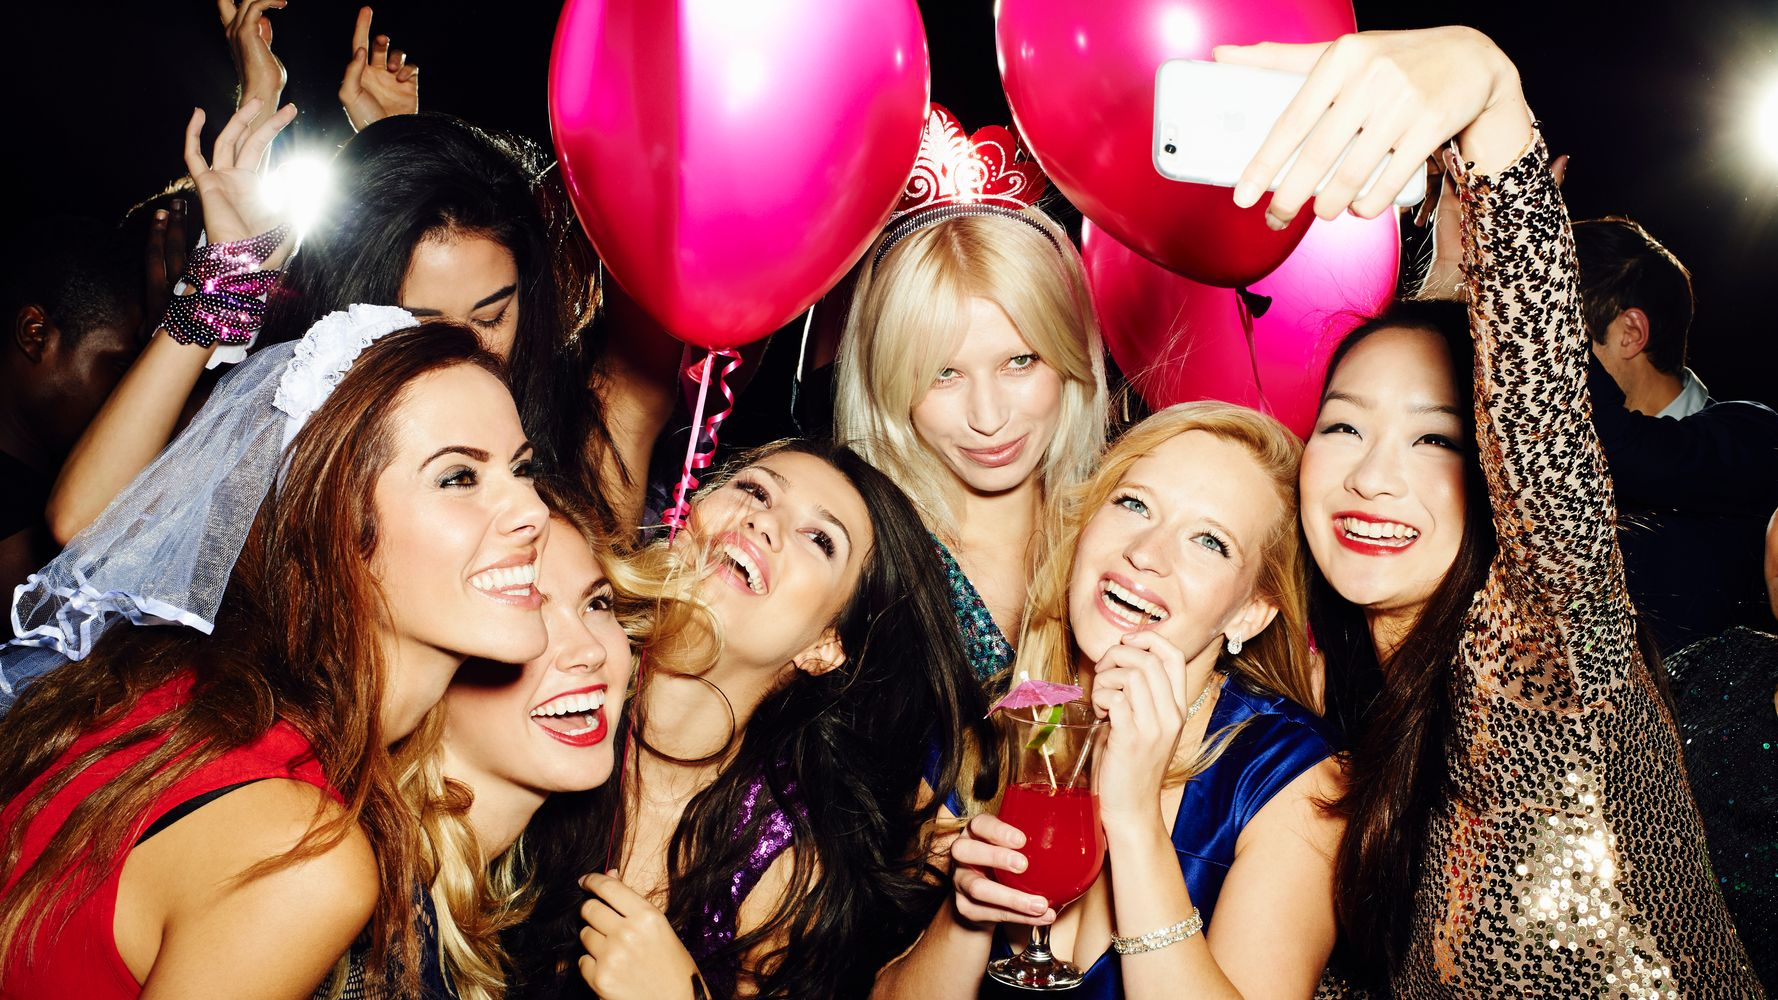 Comment Organiser Un Party D Ado how much would you fork out for a hen or stag do? 'i'd draw